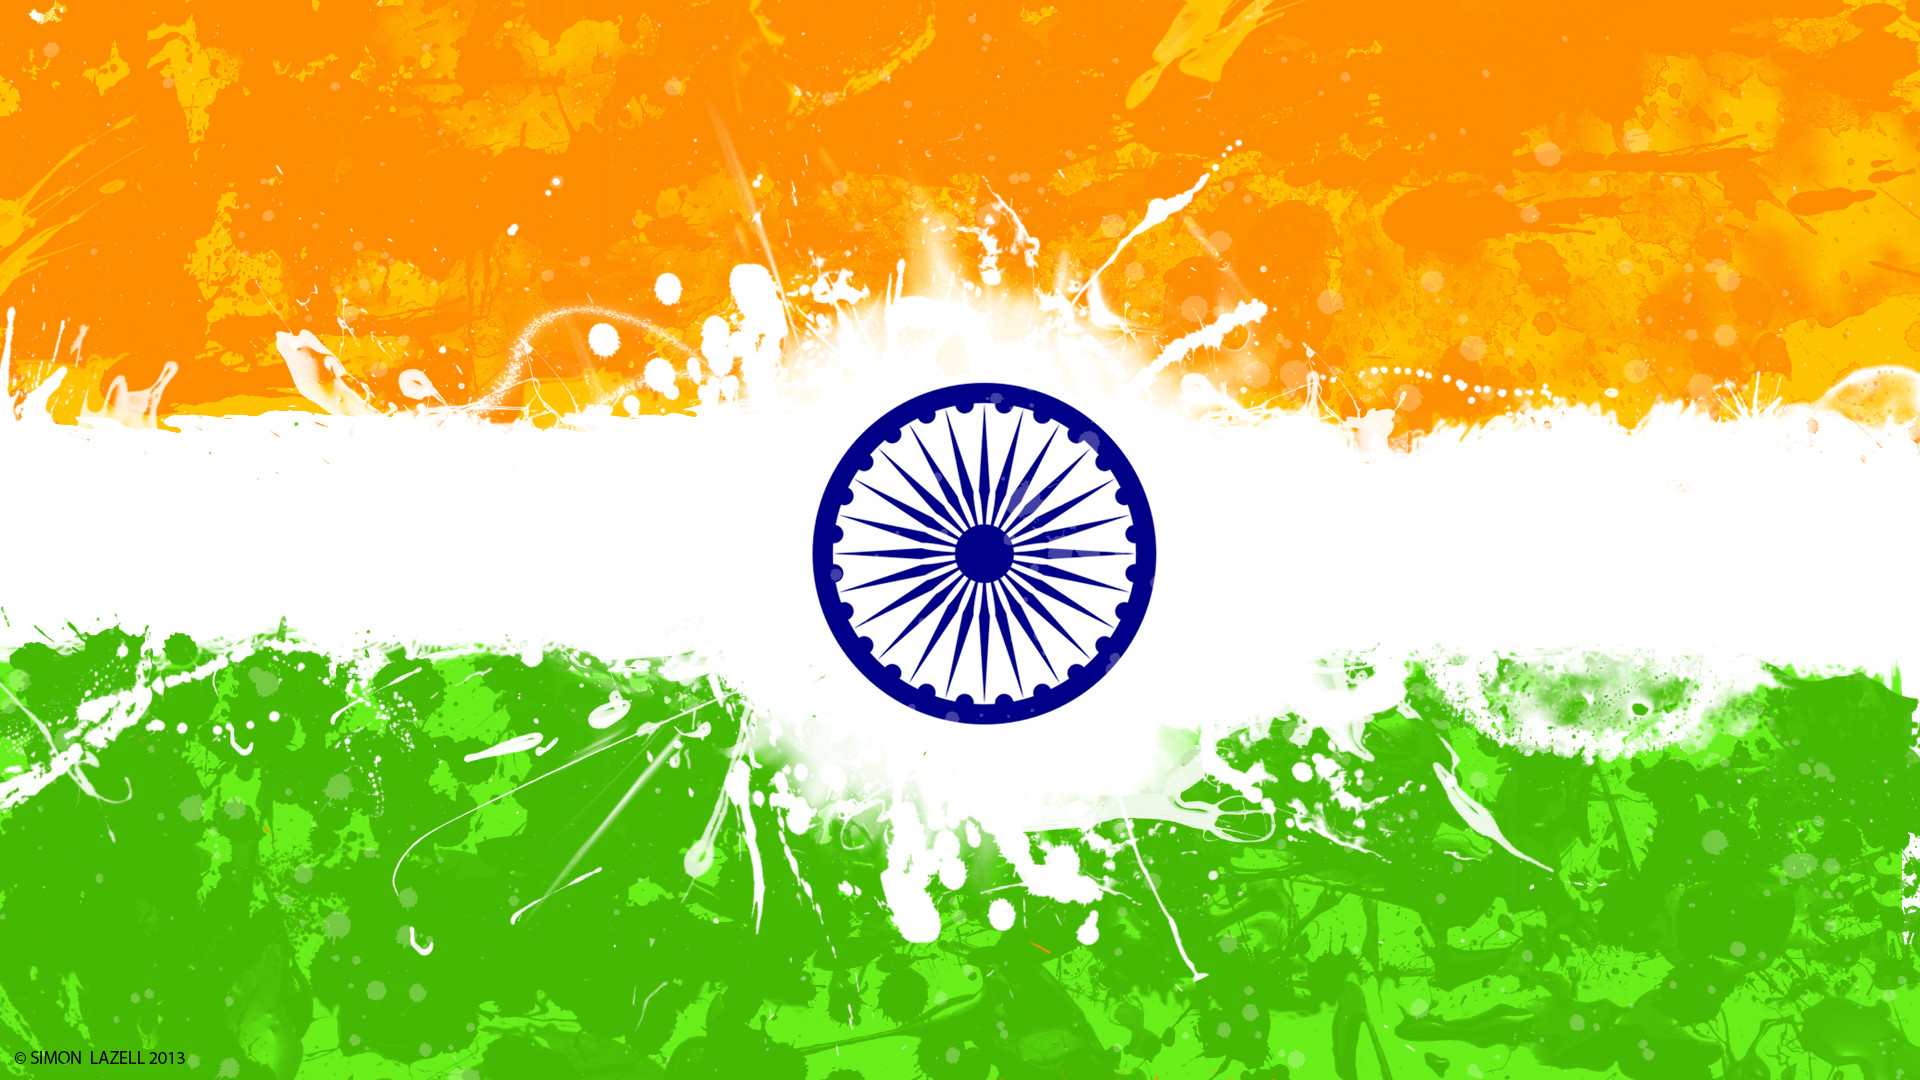 indian flag wallpapers - hd indian flag images 2018 [free download]